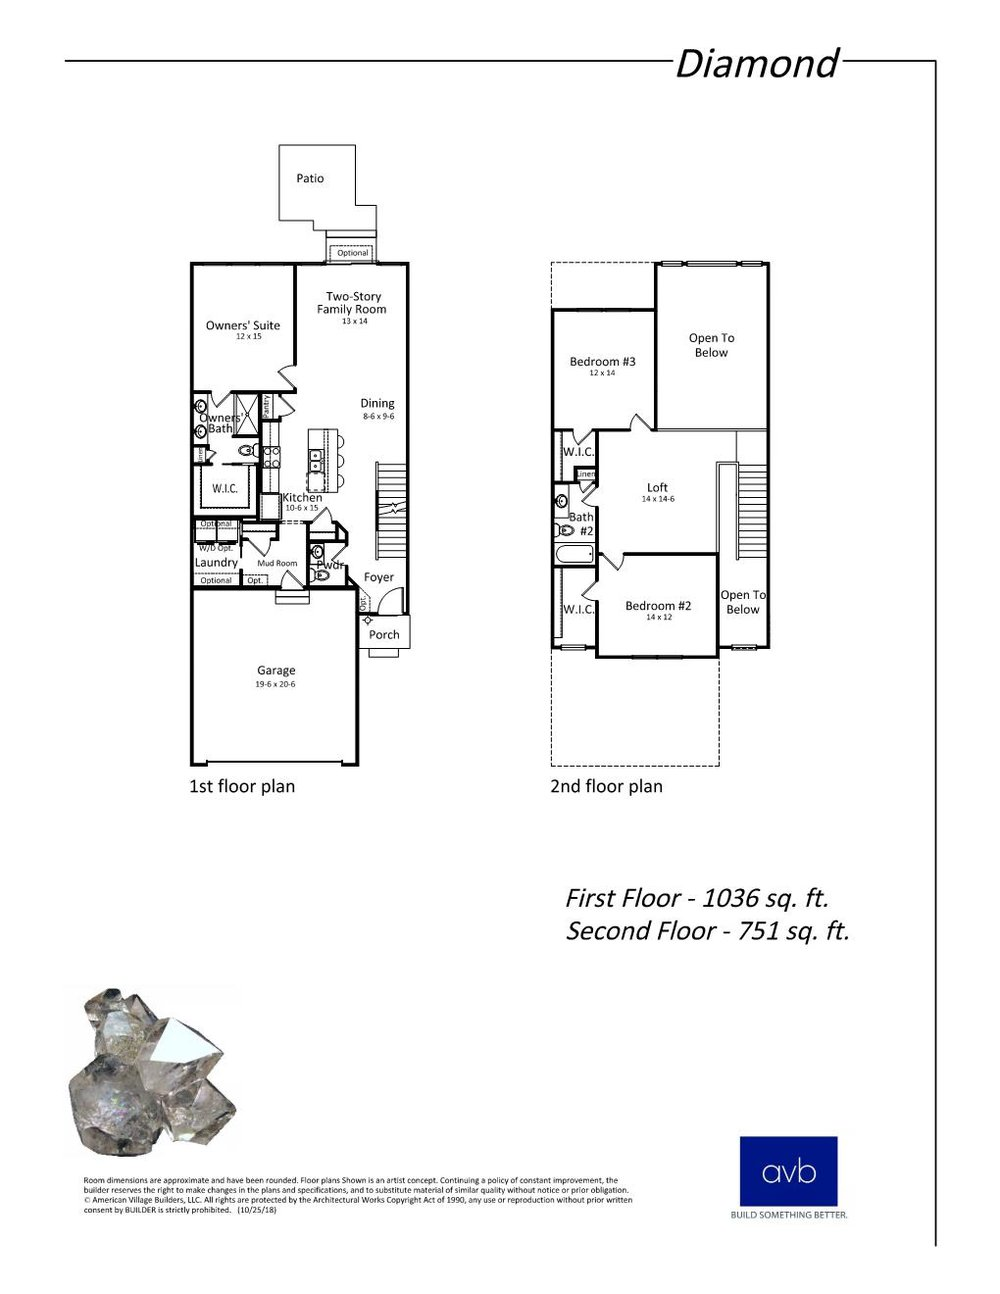 The 'Diamond' floor plan